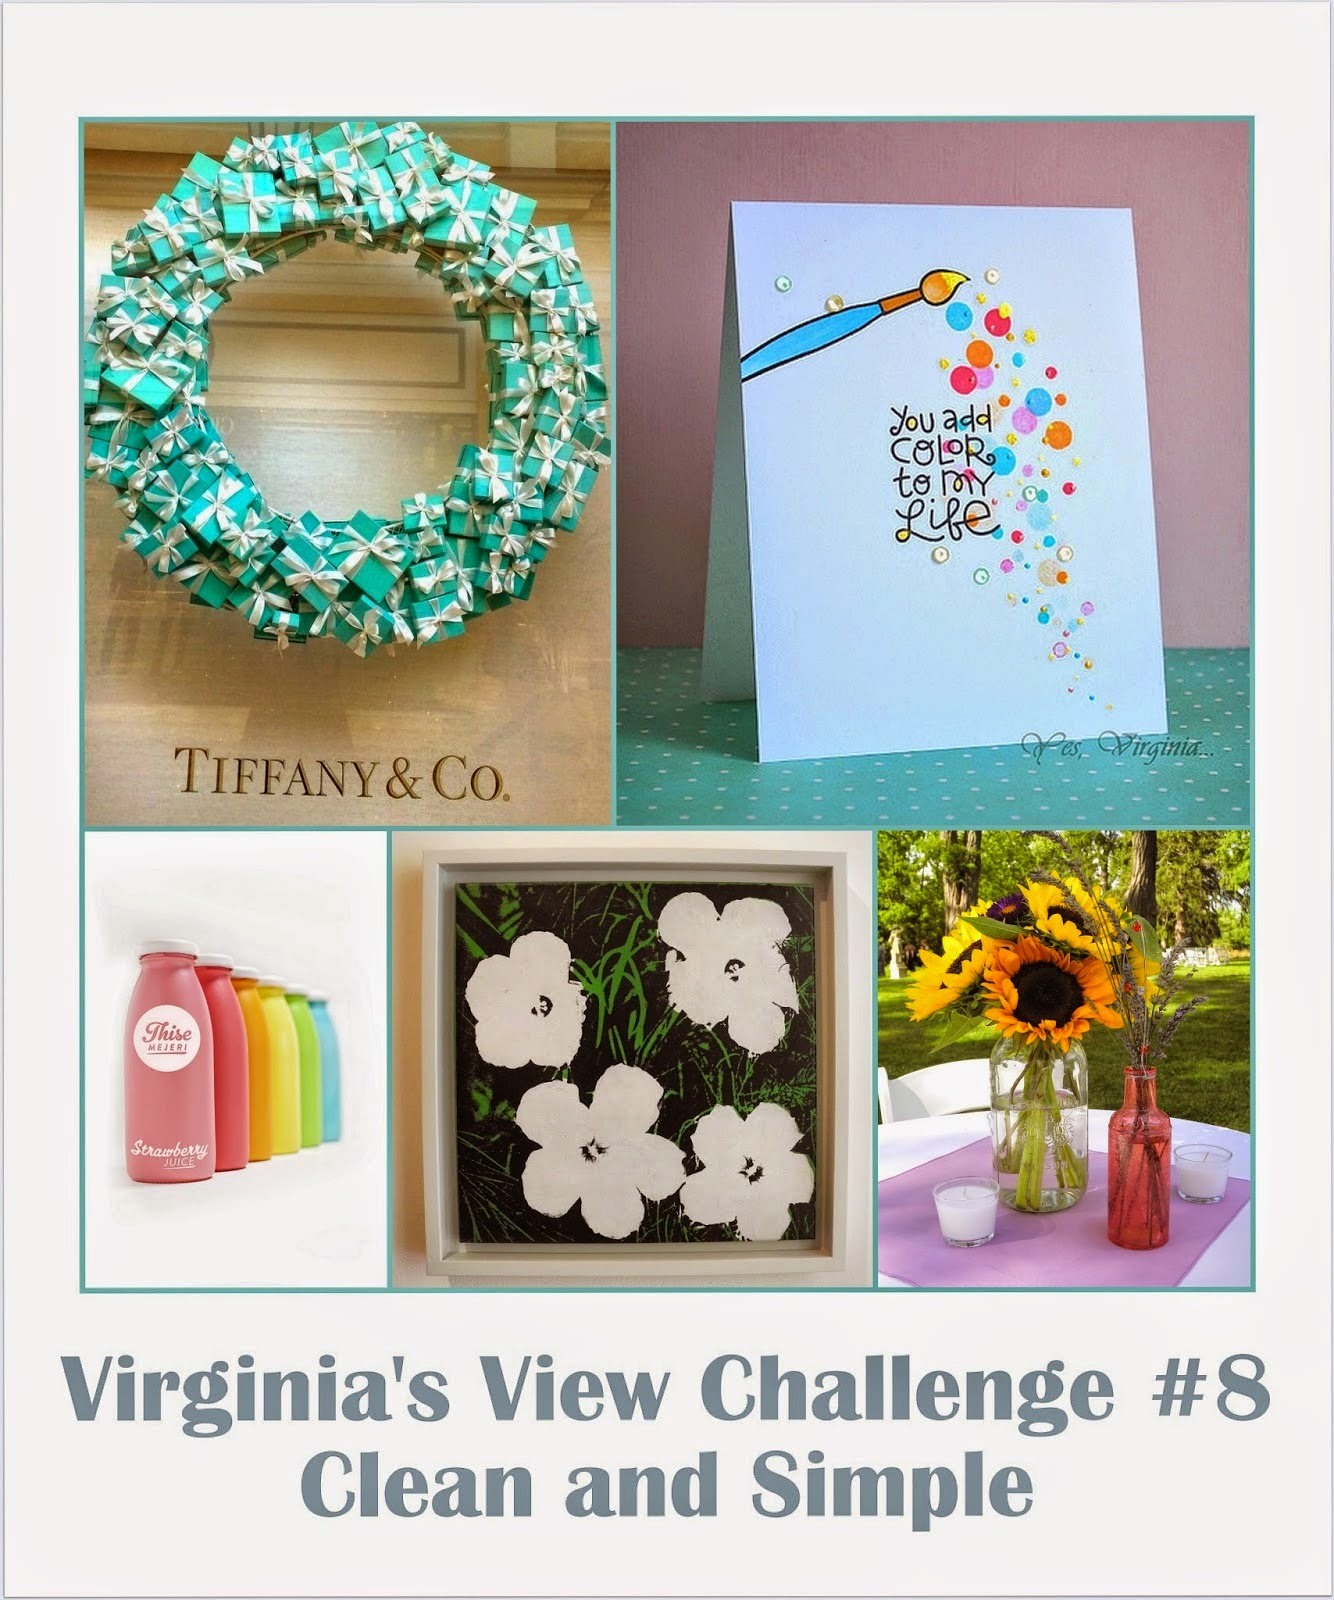 http://virginiasviewchallenge.blogspot.ca/2014/10/spotlight-feature.html